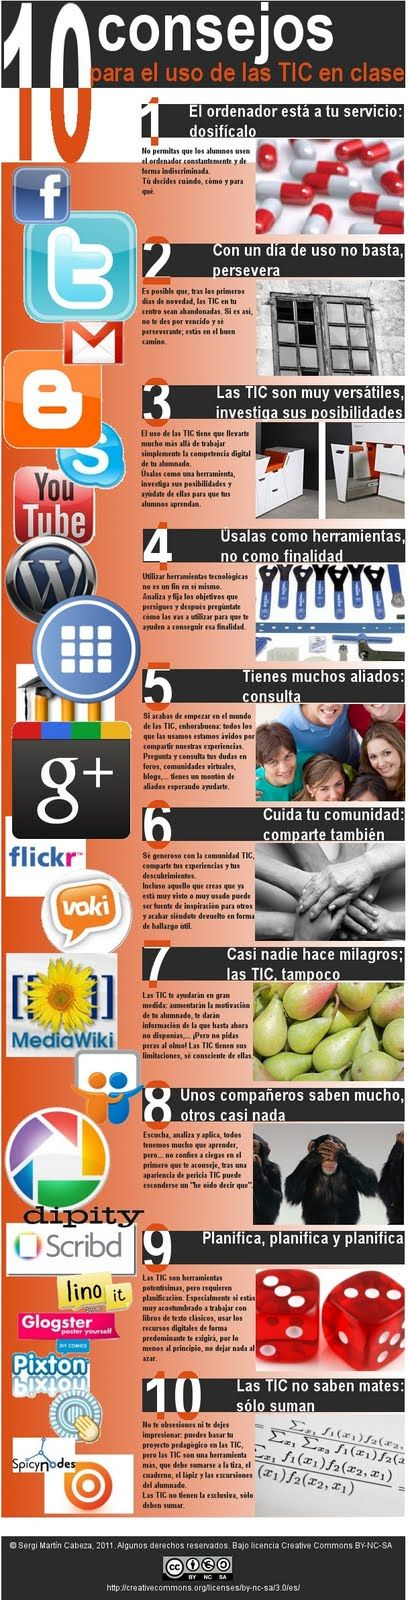 10 consejos para el uso de las TIC en clases: Twitch, Using, For, Ict, Class, Of The, Use Of, Tips, 10 Tips